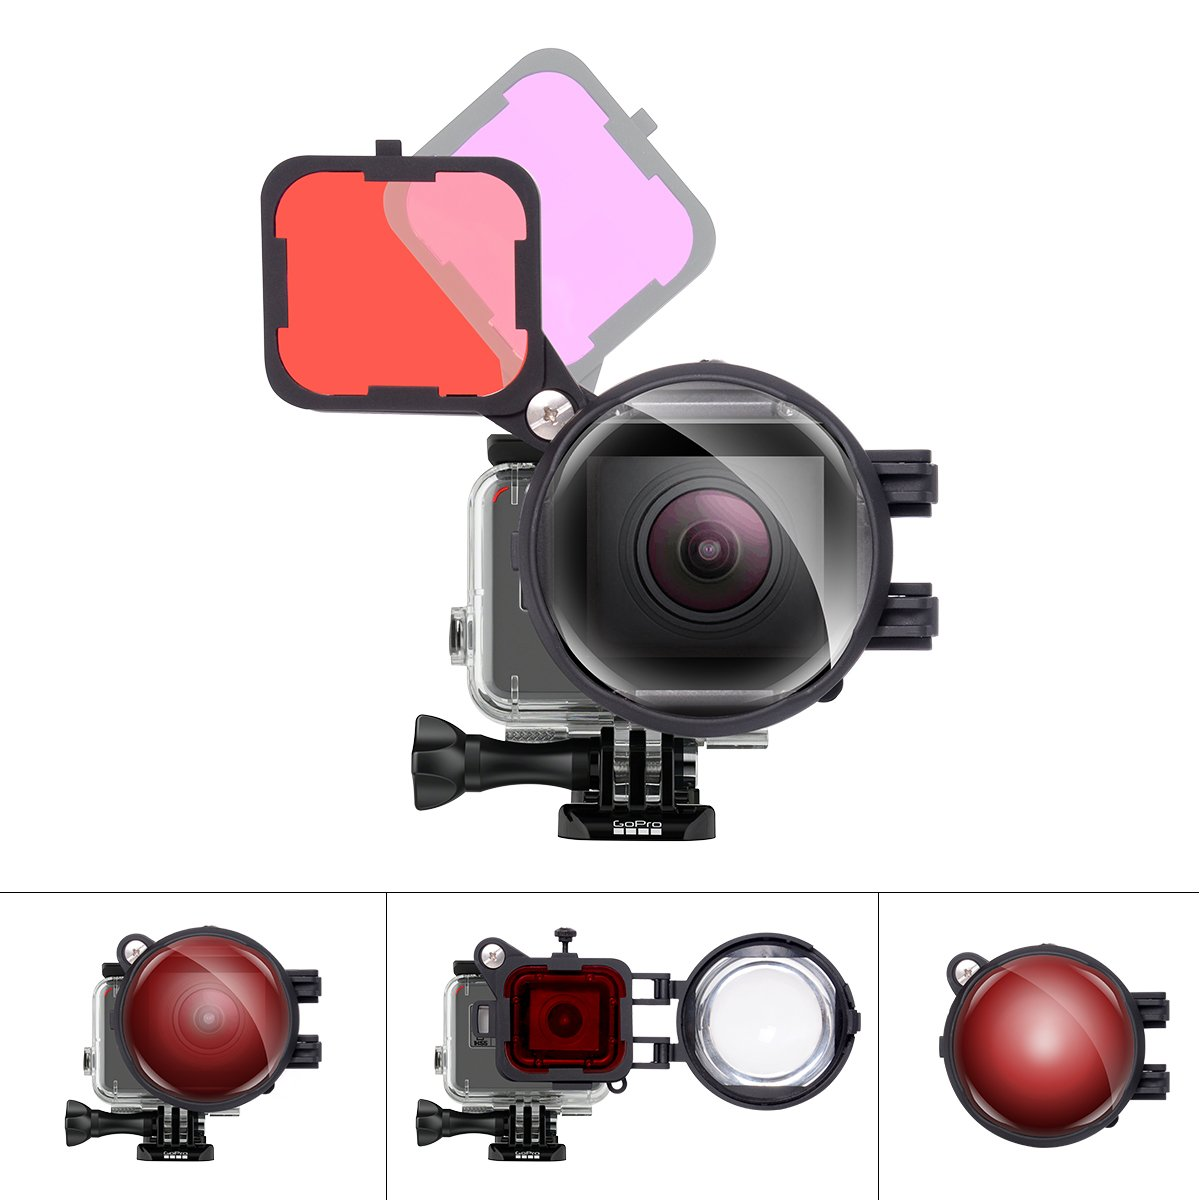 3in1 Dive Lens Combo 16X Macro Lens + Red + Magenta Color Correction Filter Set Compatible with GoPro Hero 7 6 5 Black for Tropical Blue/River Lake Green Water Diving Underwater Scuba Photography by fantaseal